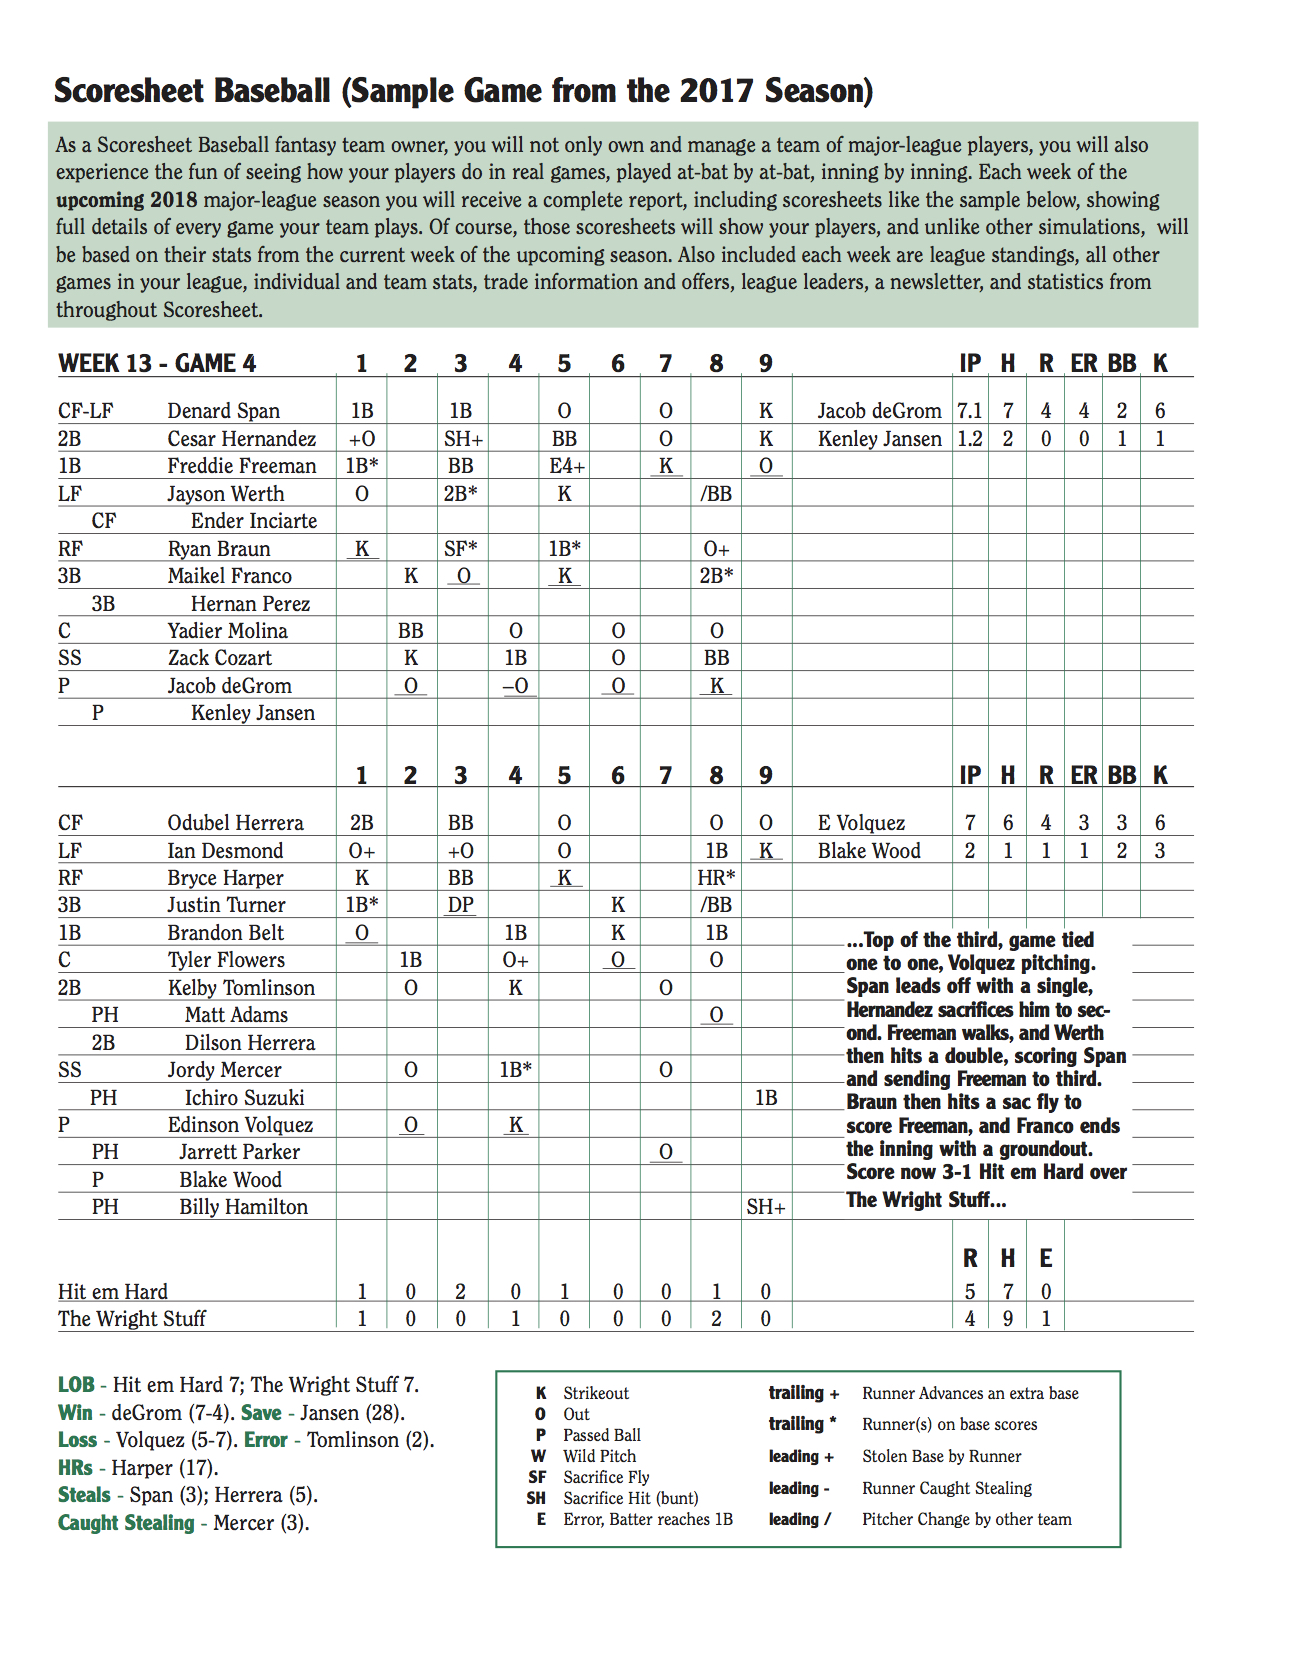 Scoresheet Fantasy Baseball | Sample Scoresheet (Boxscore)